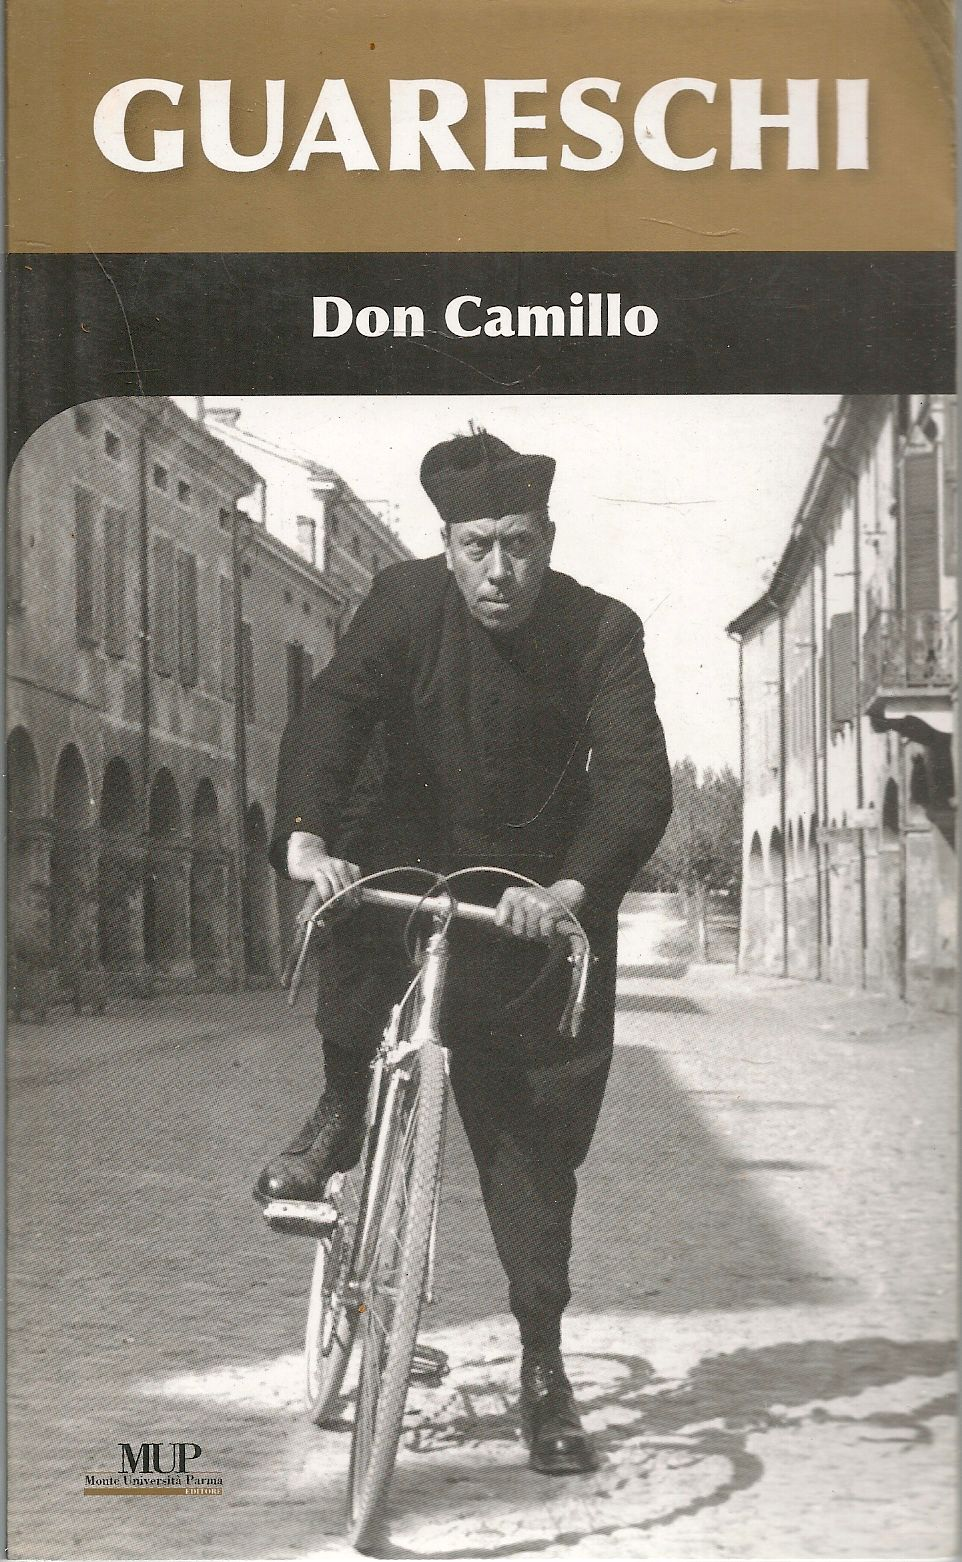 DON CAMILLO - GUARESCHI - ED. MONTE UNIVERSITA' PARMA